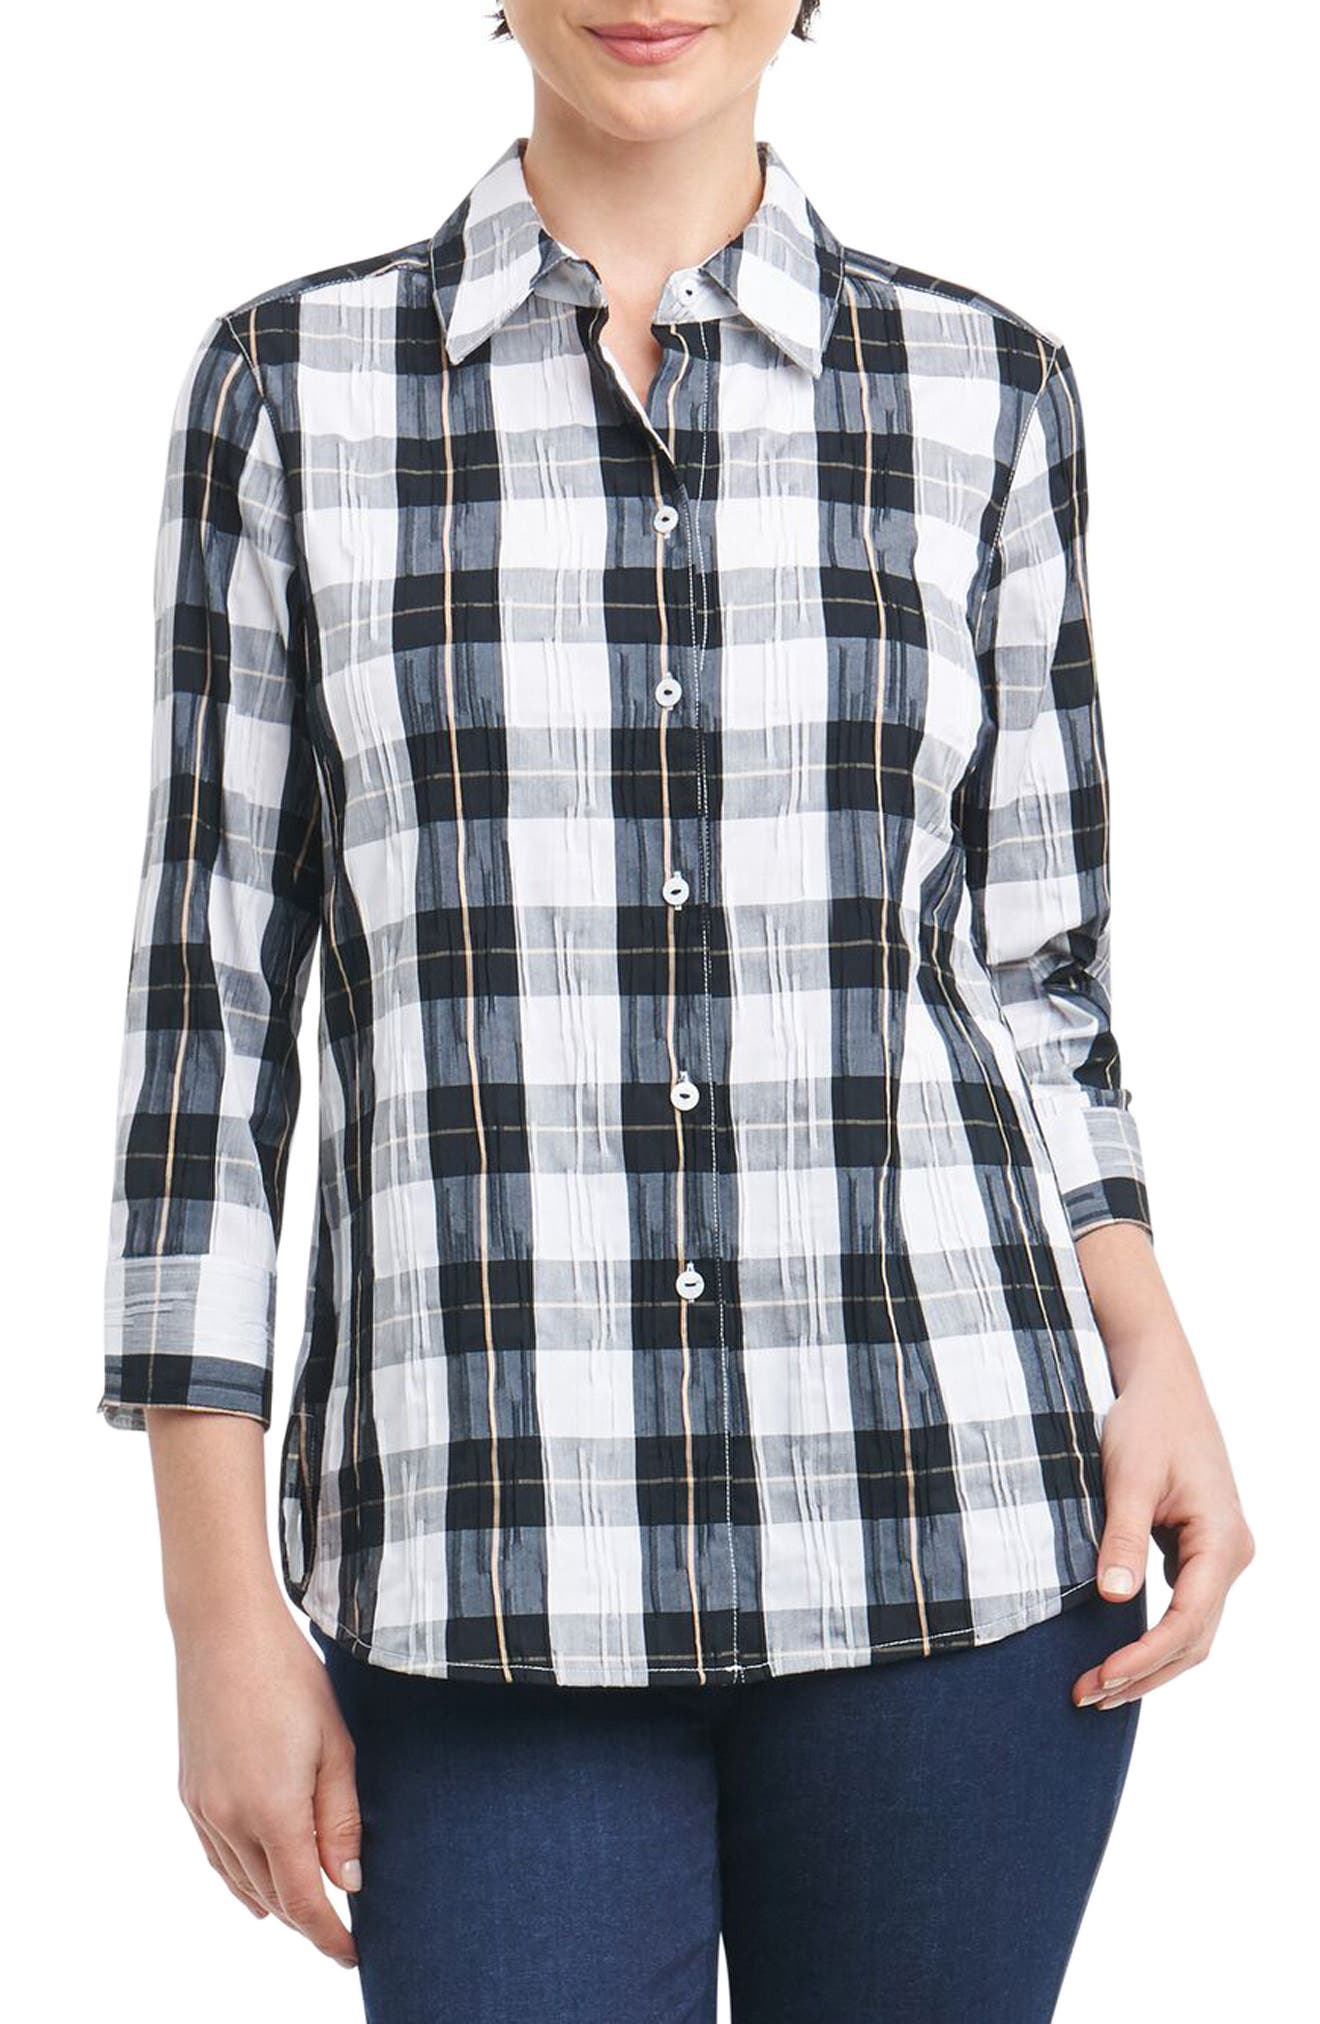 Alternate Image 1 Selected - Foxcroft Sue Shaped Fit Crinkle Plaid Shirt (Regular & Petite)